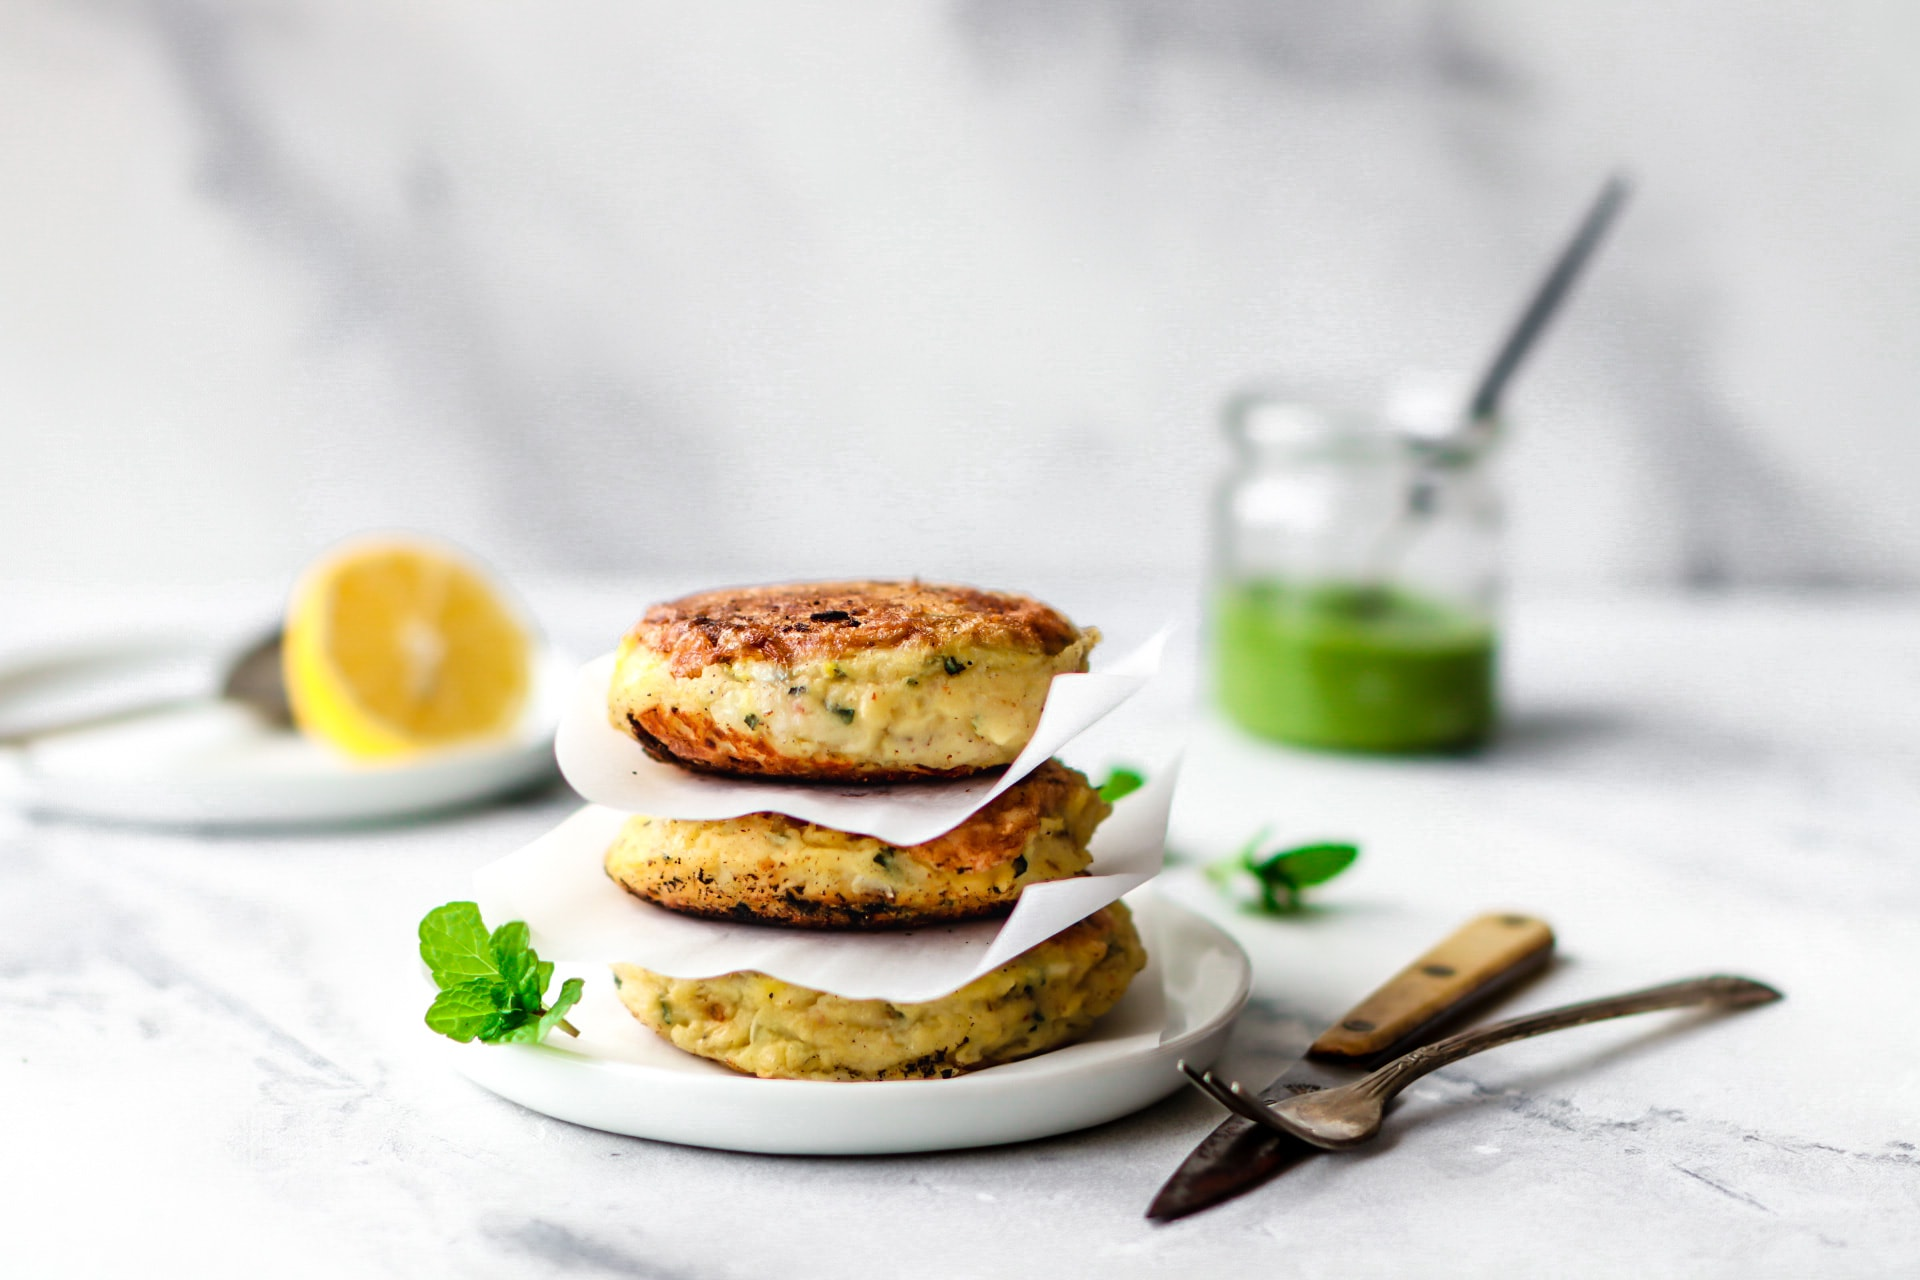 Stack of three Aloo Ki Tikkis (Pakistani-Style Potato Cakes) on a round white plate garnished with mint leaves and a jar of green chutney in the background.